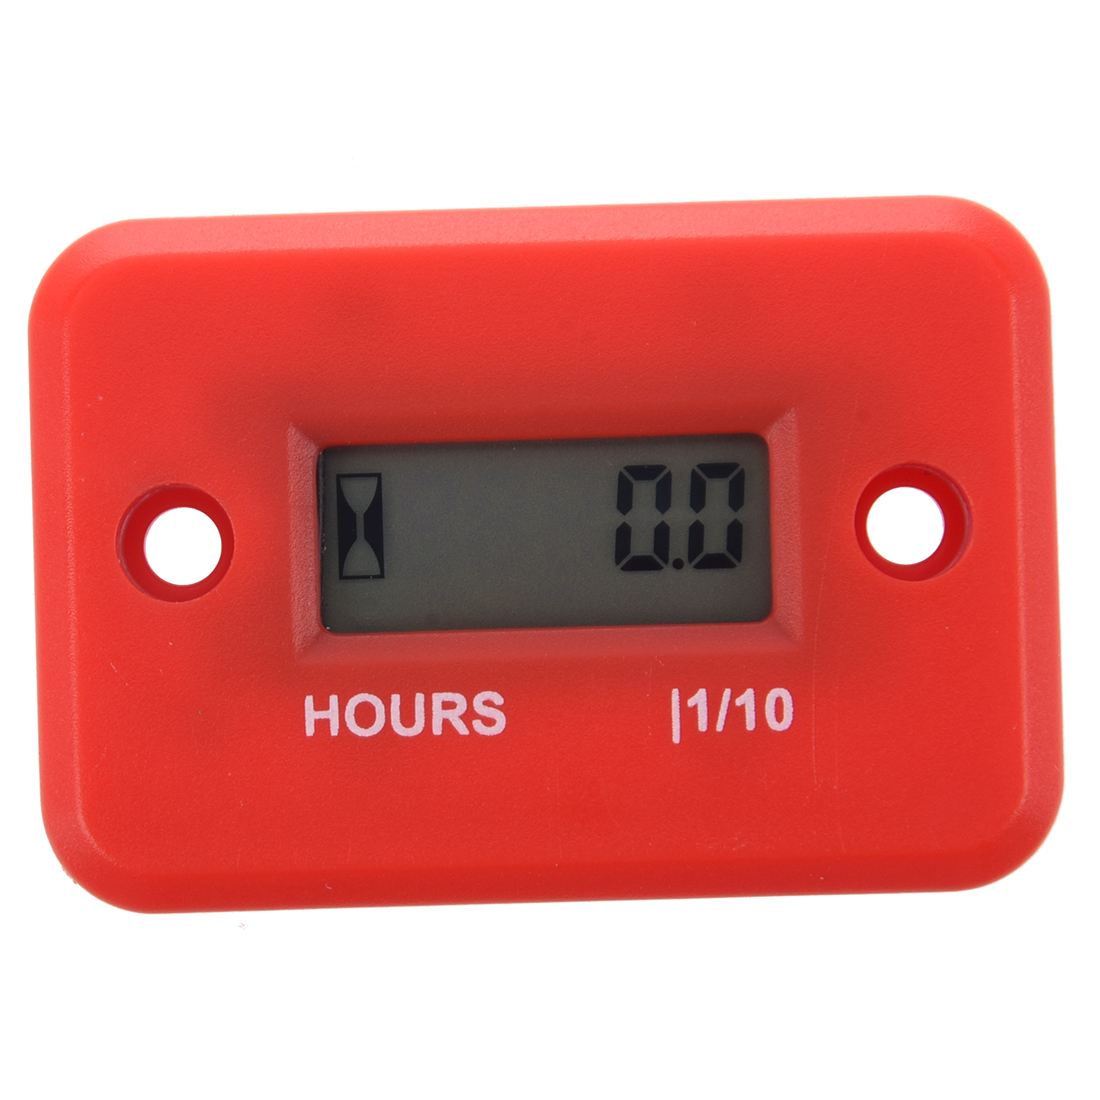 Hour Meter For Boat Yama Ski Dirt Quad Bike Marine ATV Motorcycle Snowmobile Stroke Gas Engine Generator digital counter Red